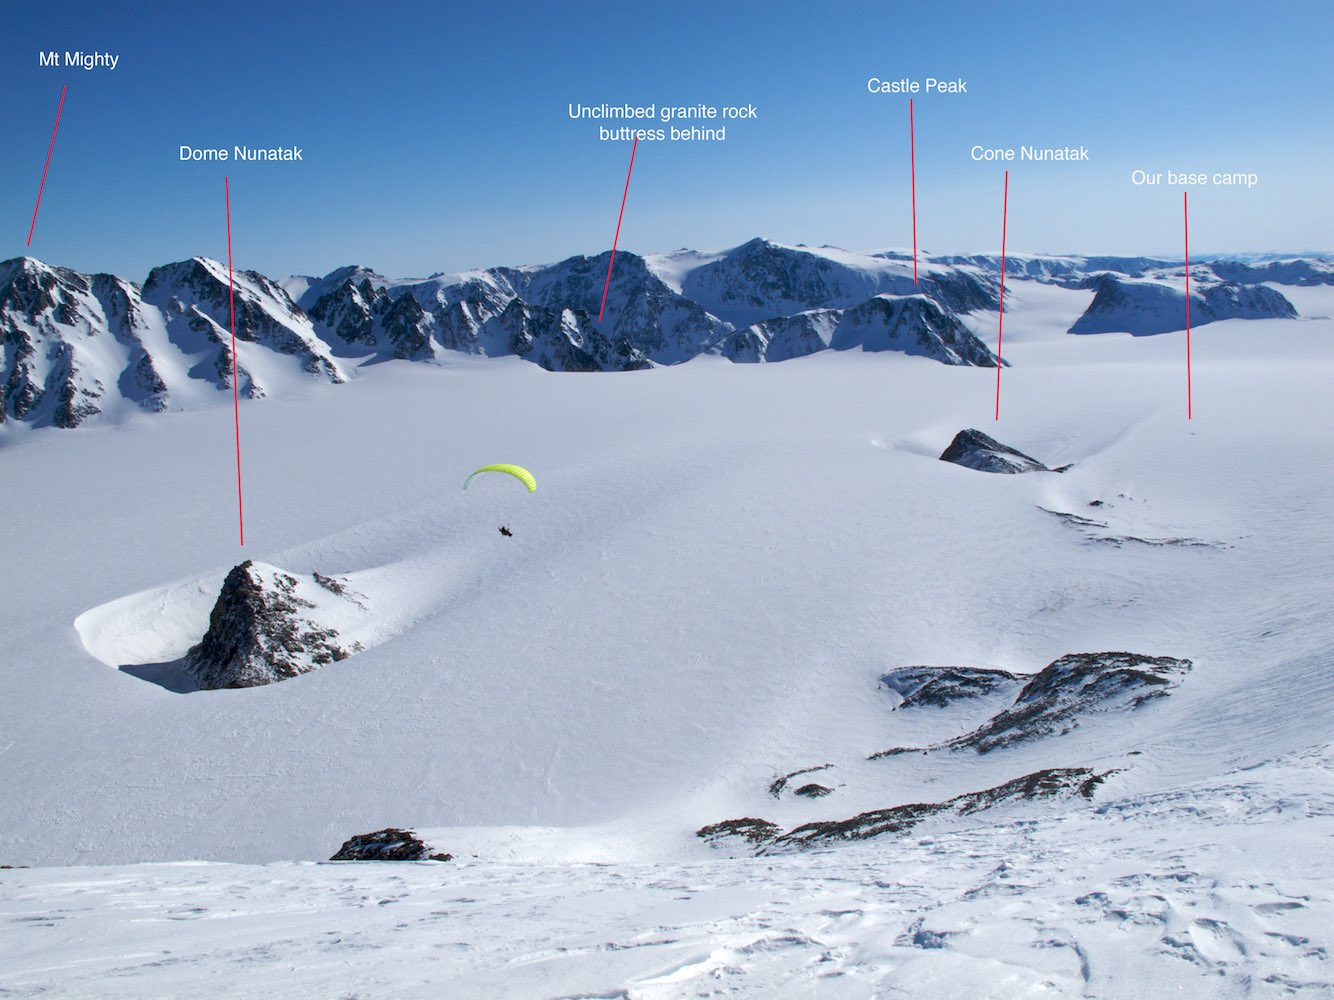 Flying from Kagoo Peak - peaks described (click for larger image)